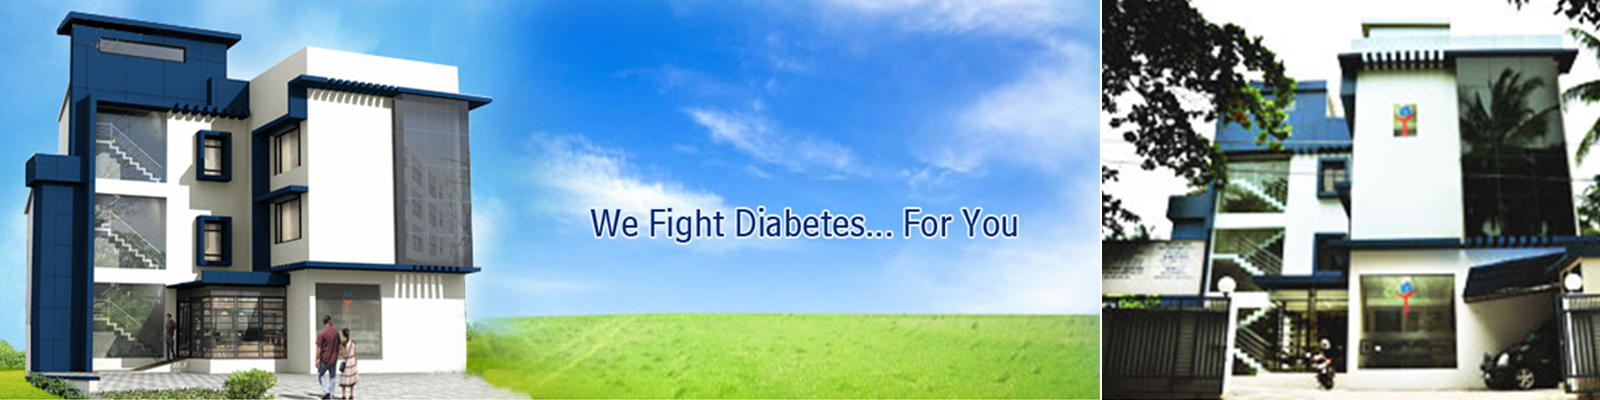 We Fight Diabetes for You